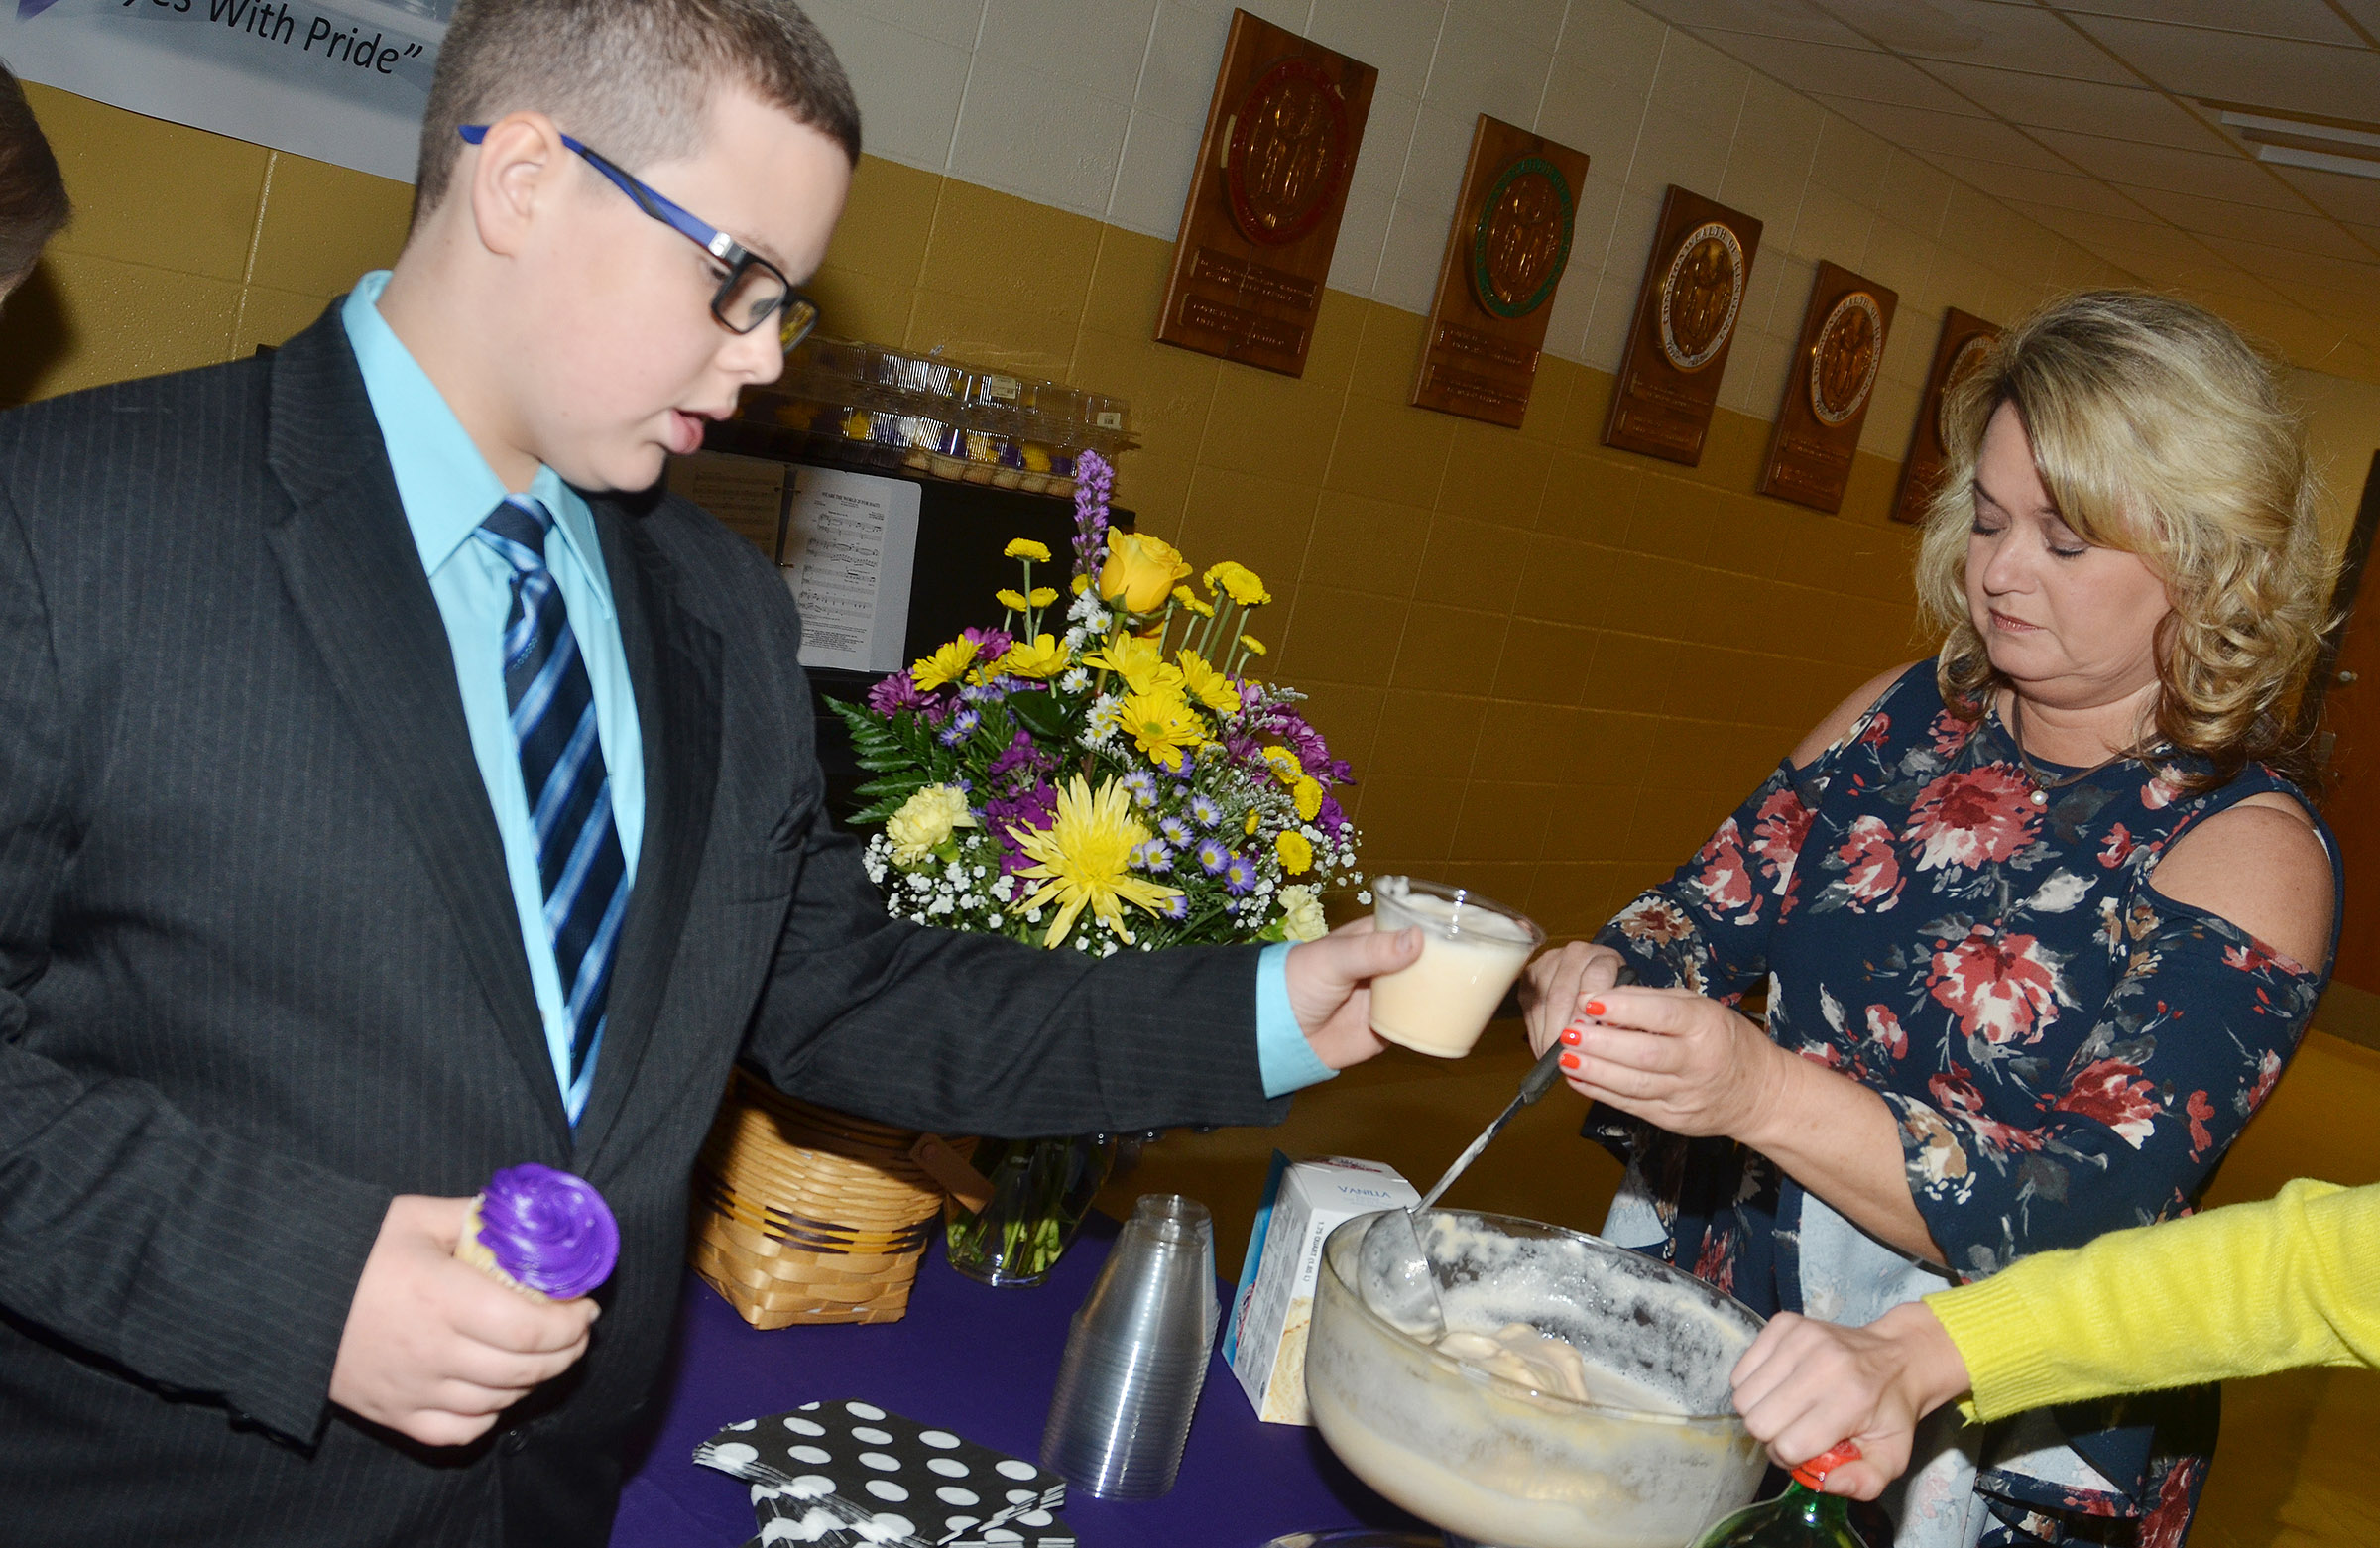 CMS sixth-grader Daniel Caton is served punch at a reception following the ceremony. At right is Campbellsville High School bookkeeper Kim Thompson.